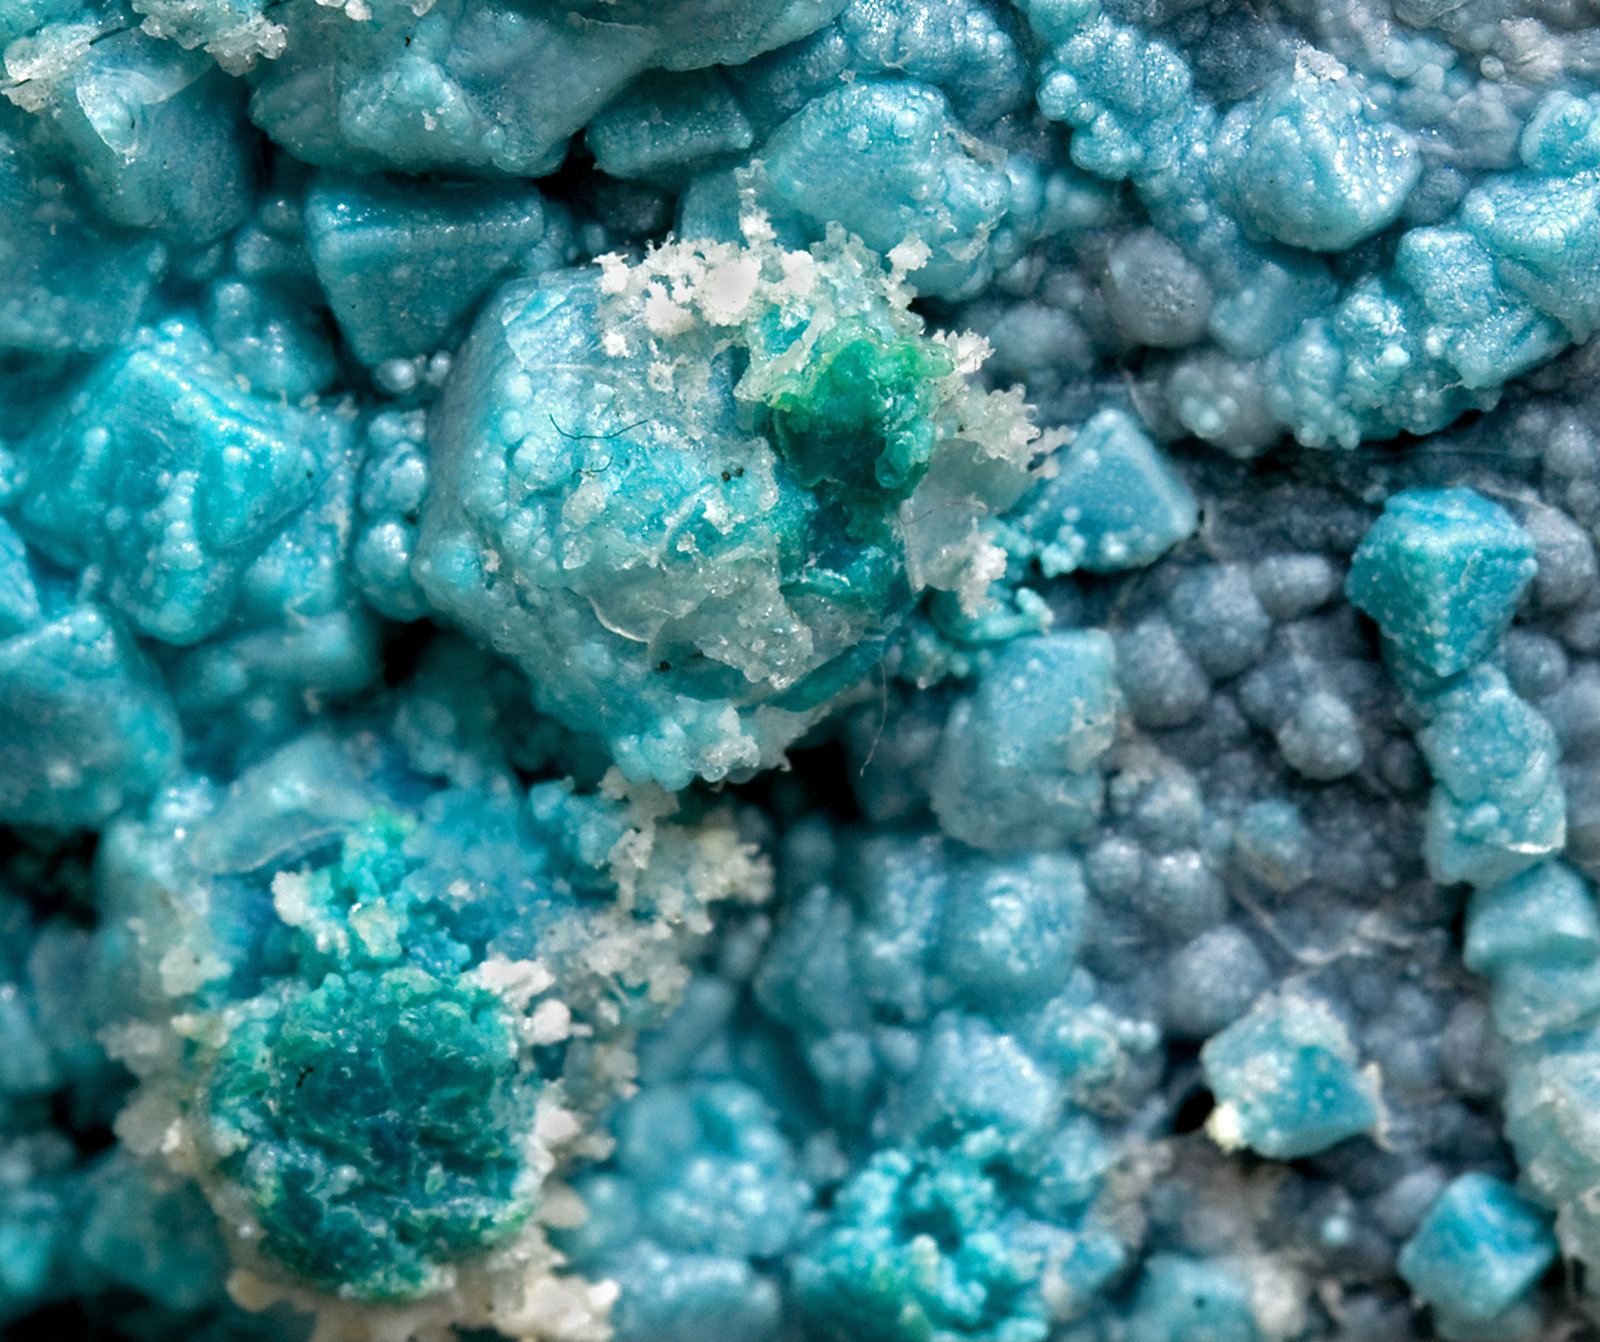 specimens/s_imagesV1/Chrysocolla-TC36V1d.jpg